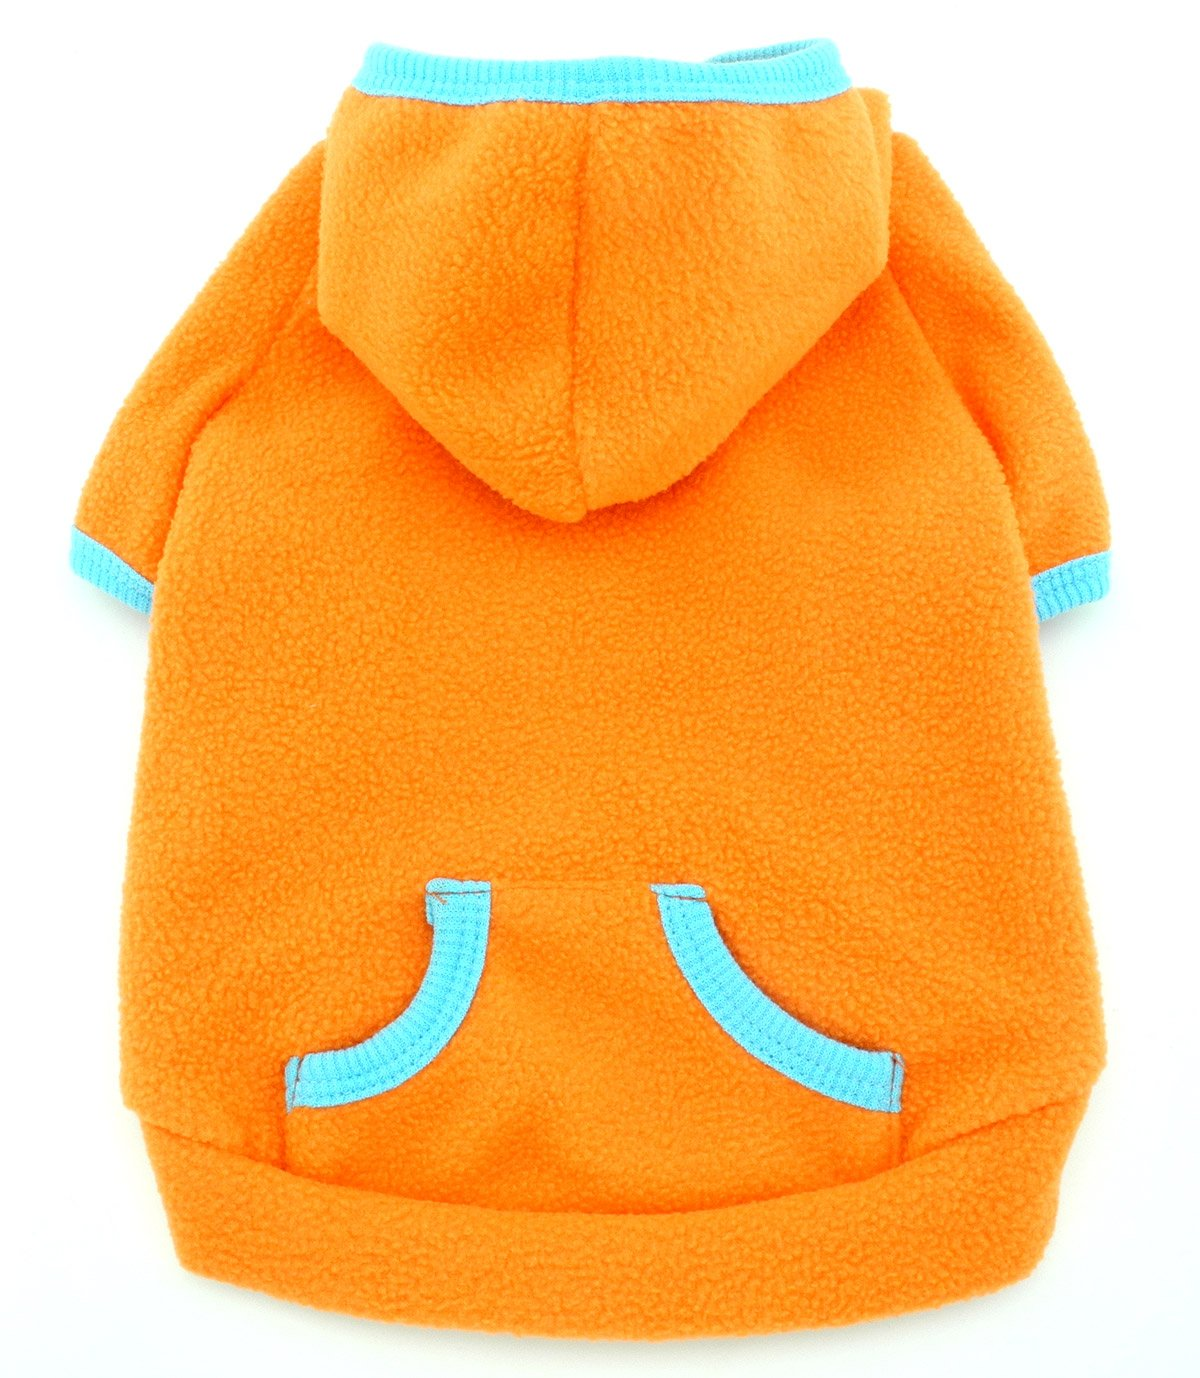 SMALLLEE_LUCKY_STORE Pet Clothes for Small Dog Cat Blank Fleece Coat Hoodie Jumper Sport Style Orange L BFL066-orange-L